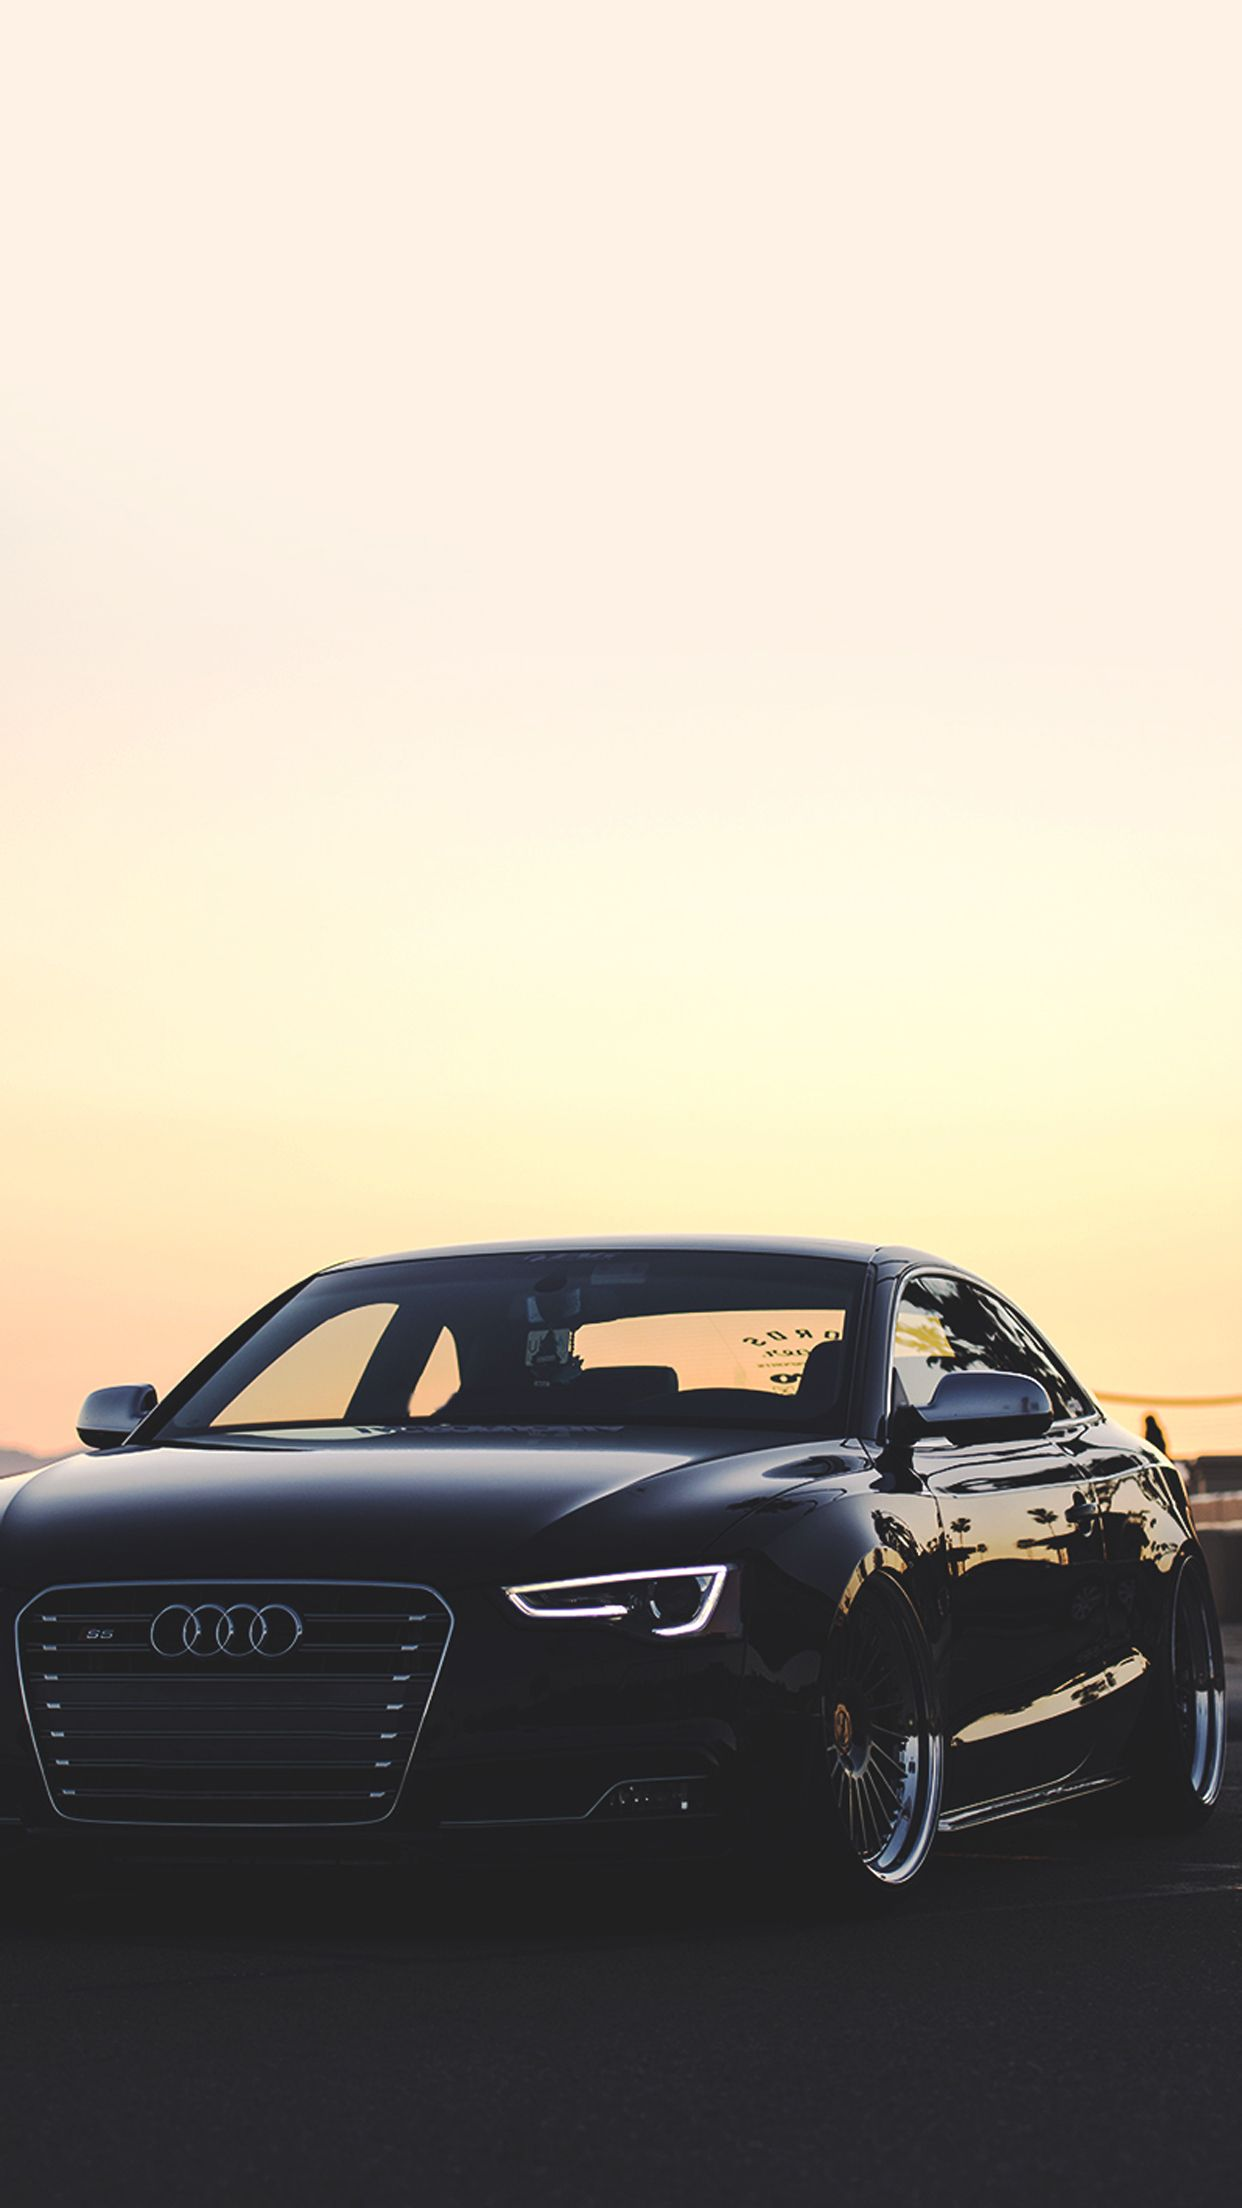 Iphone Luxury Cars Wallpaper Audi R8 Black Front Audi R8 Black Audi Cars Car Wallpapers